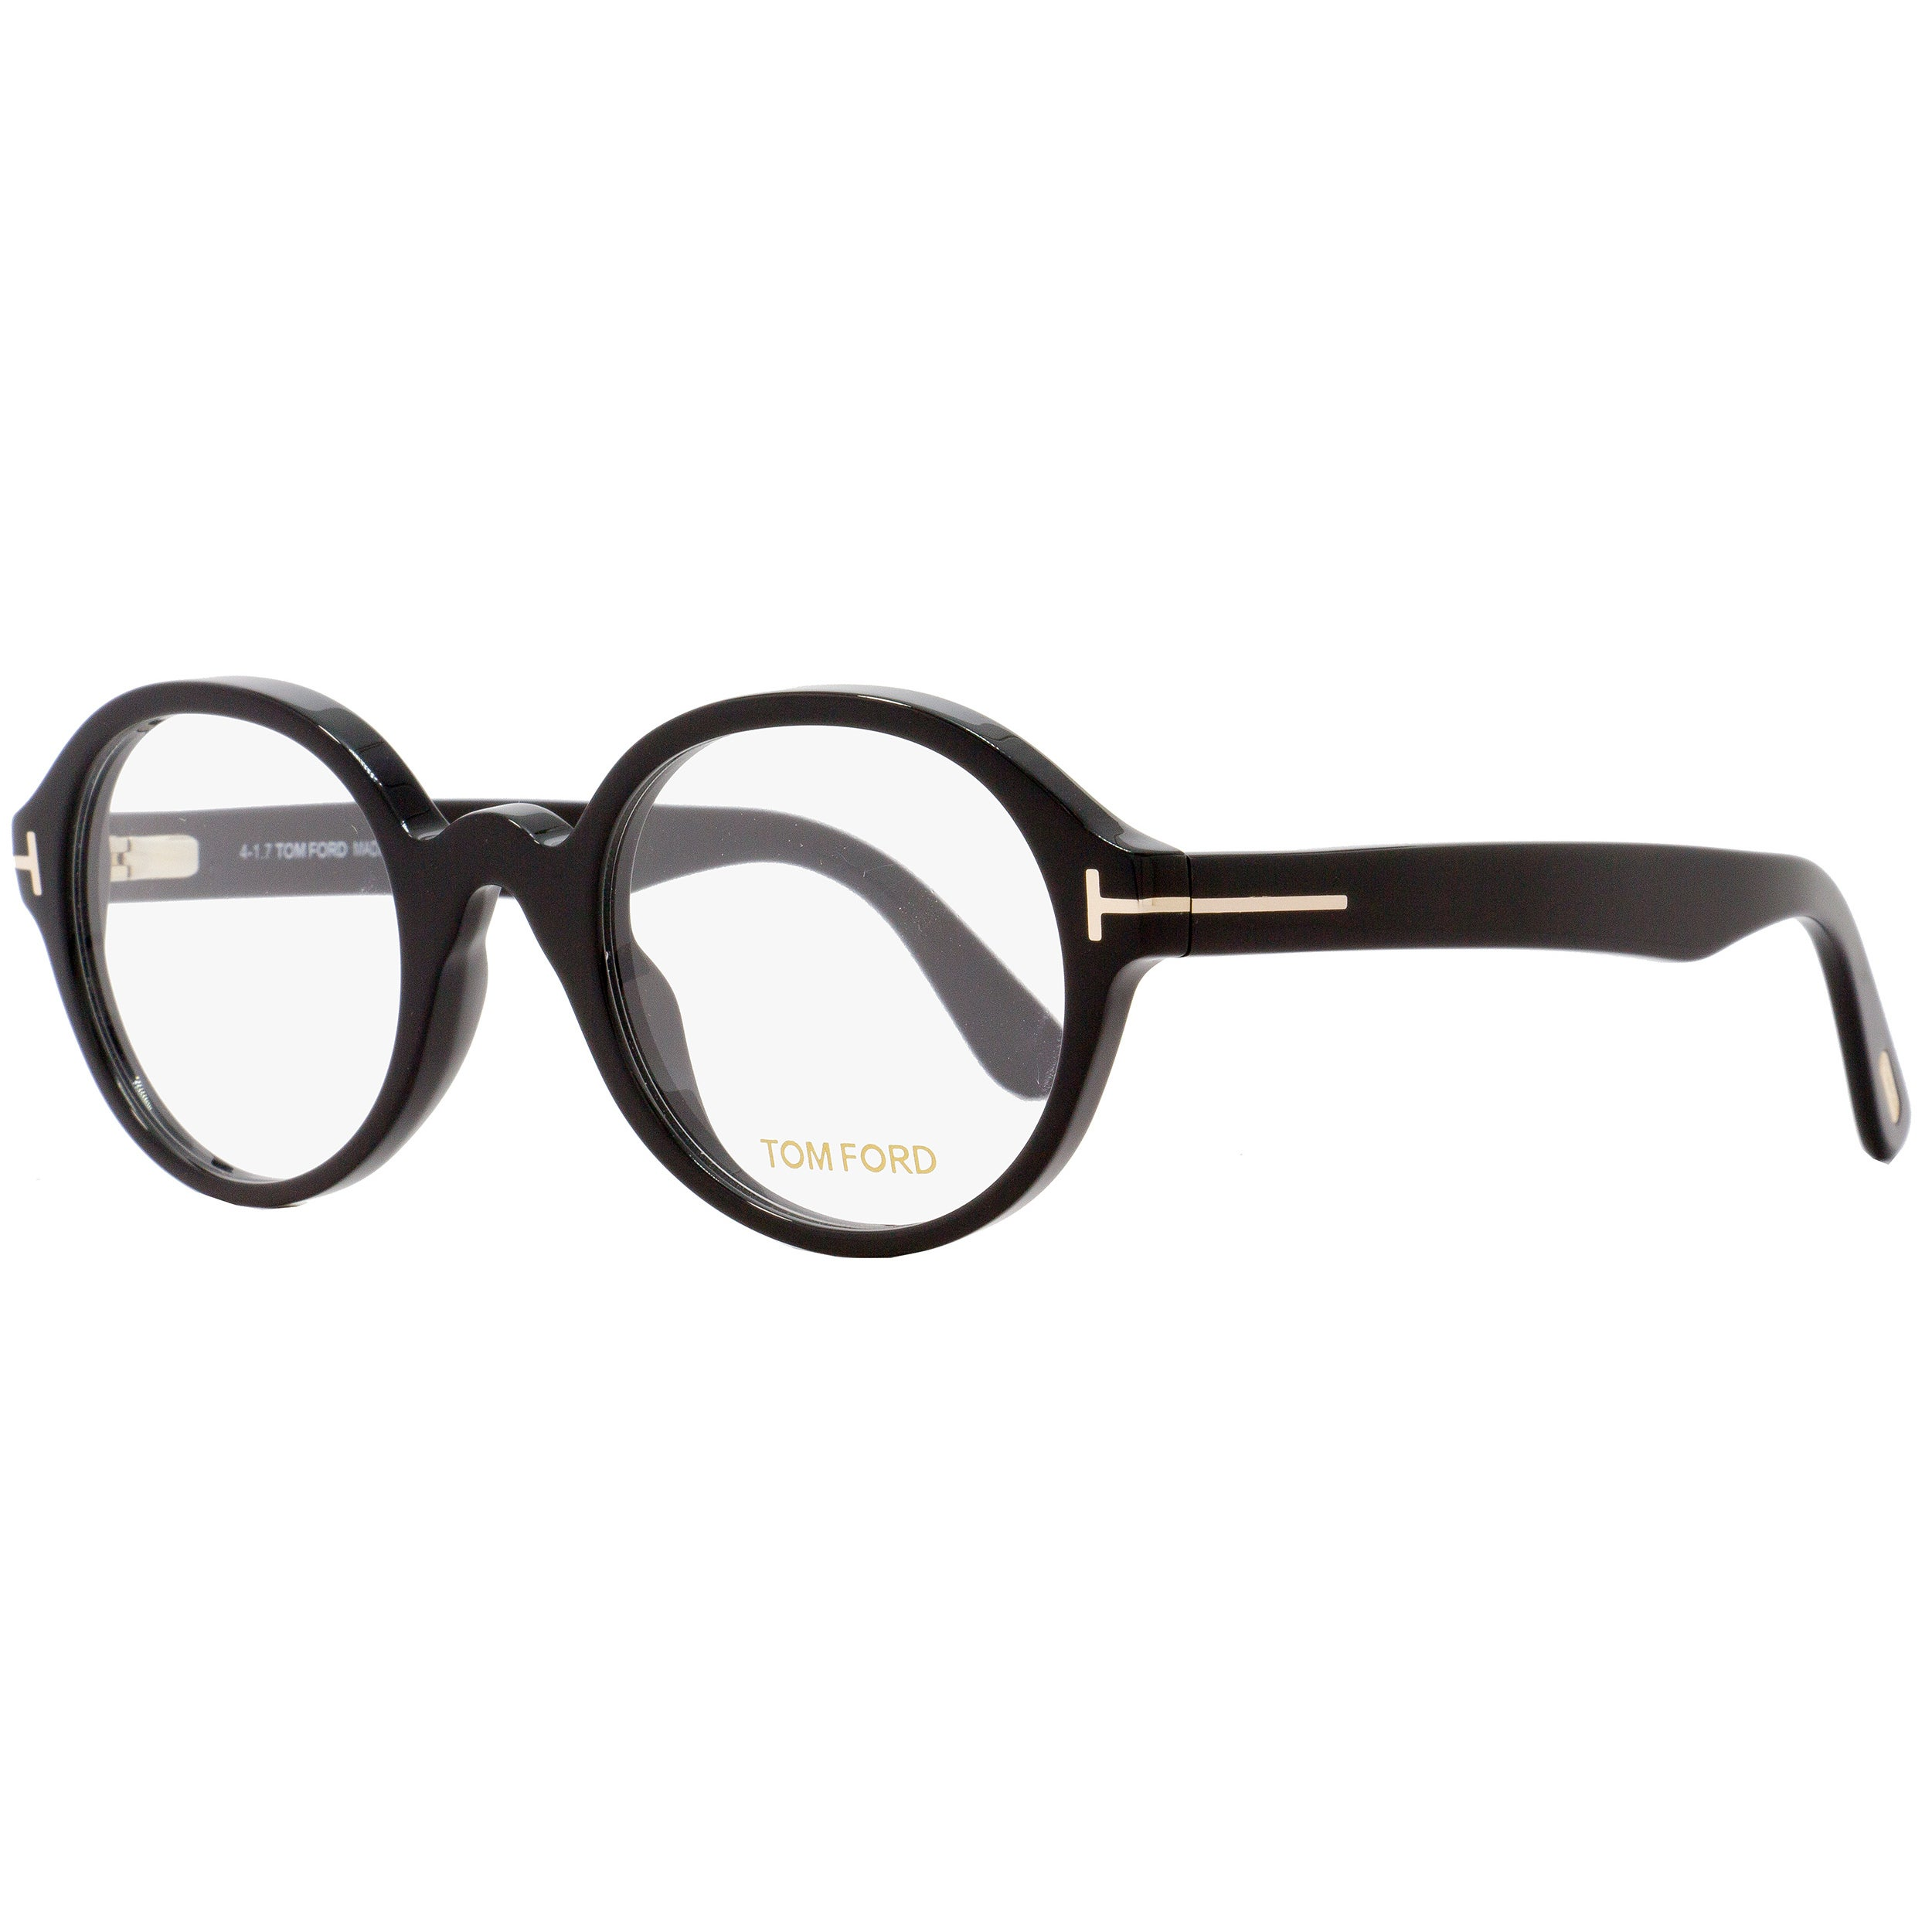 4a25f91be6b8 Shop Tom Ford TF5490 001 Unisex Black 51 mm Eyeglasses - Free Shipping  Today - Overstock - 18778826